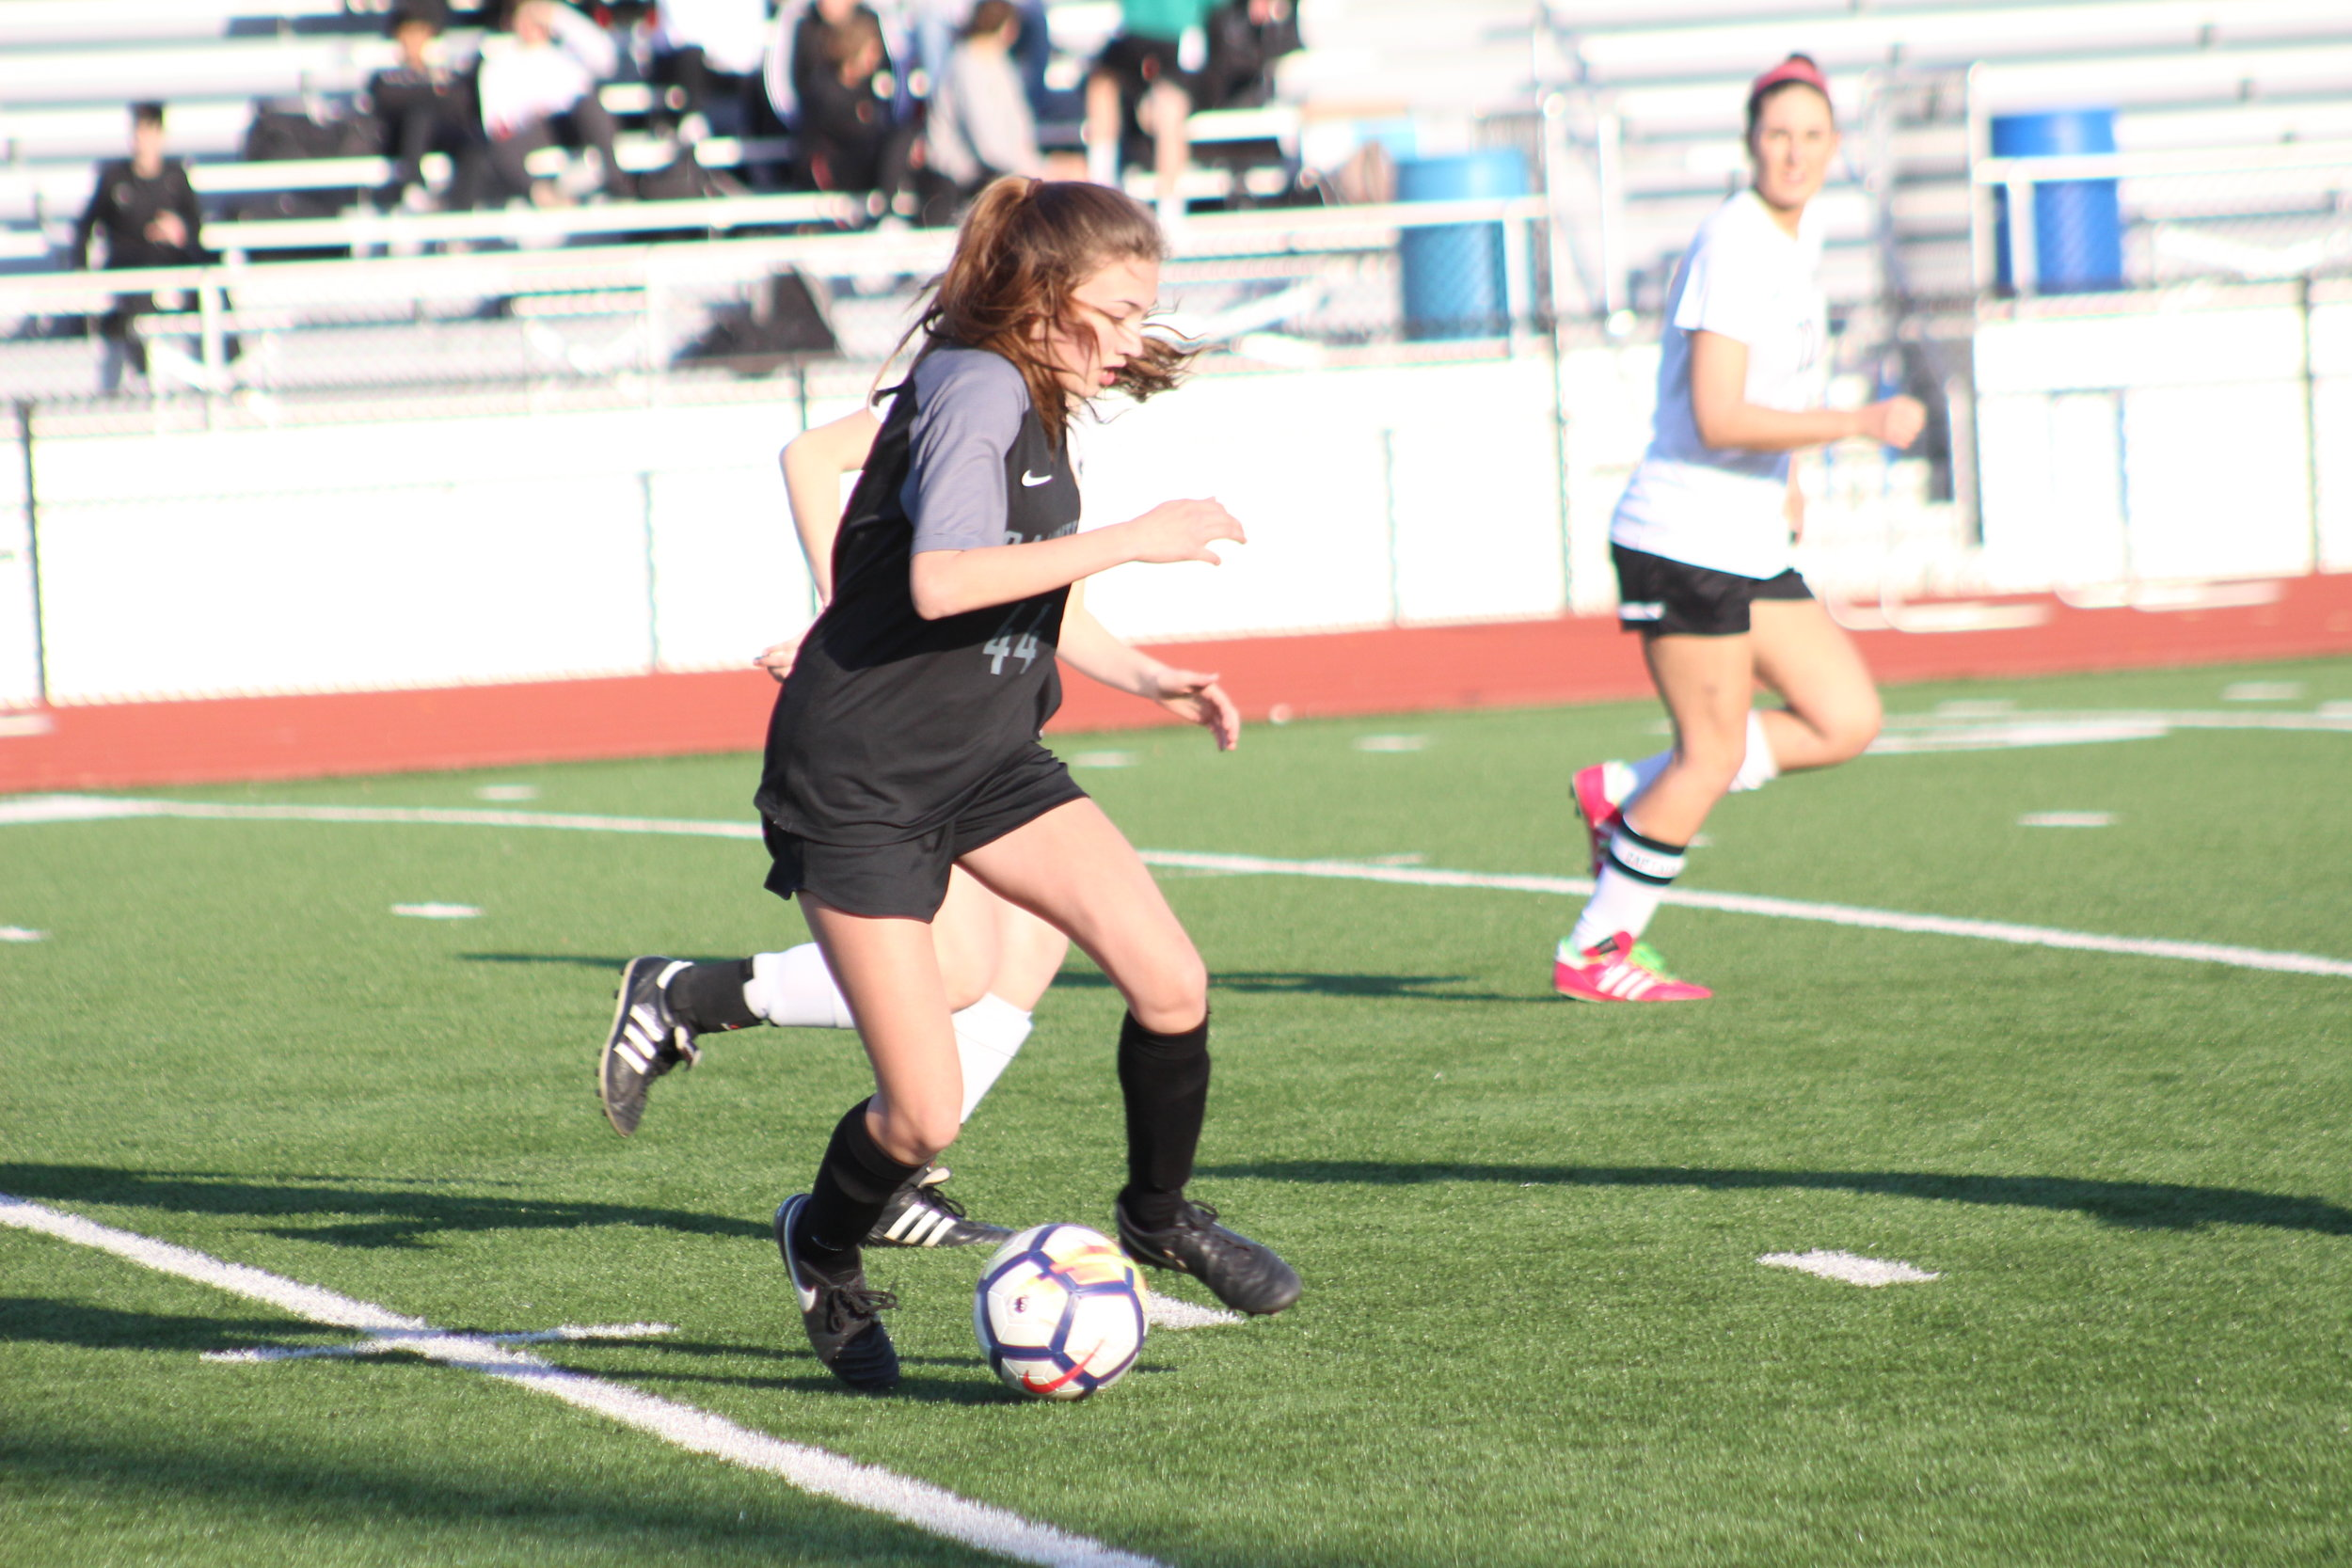 Julia Wolf led all Sandites this season with eight goals.